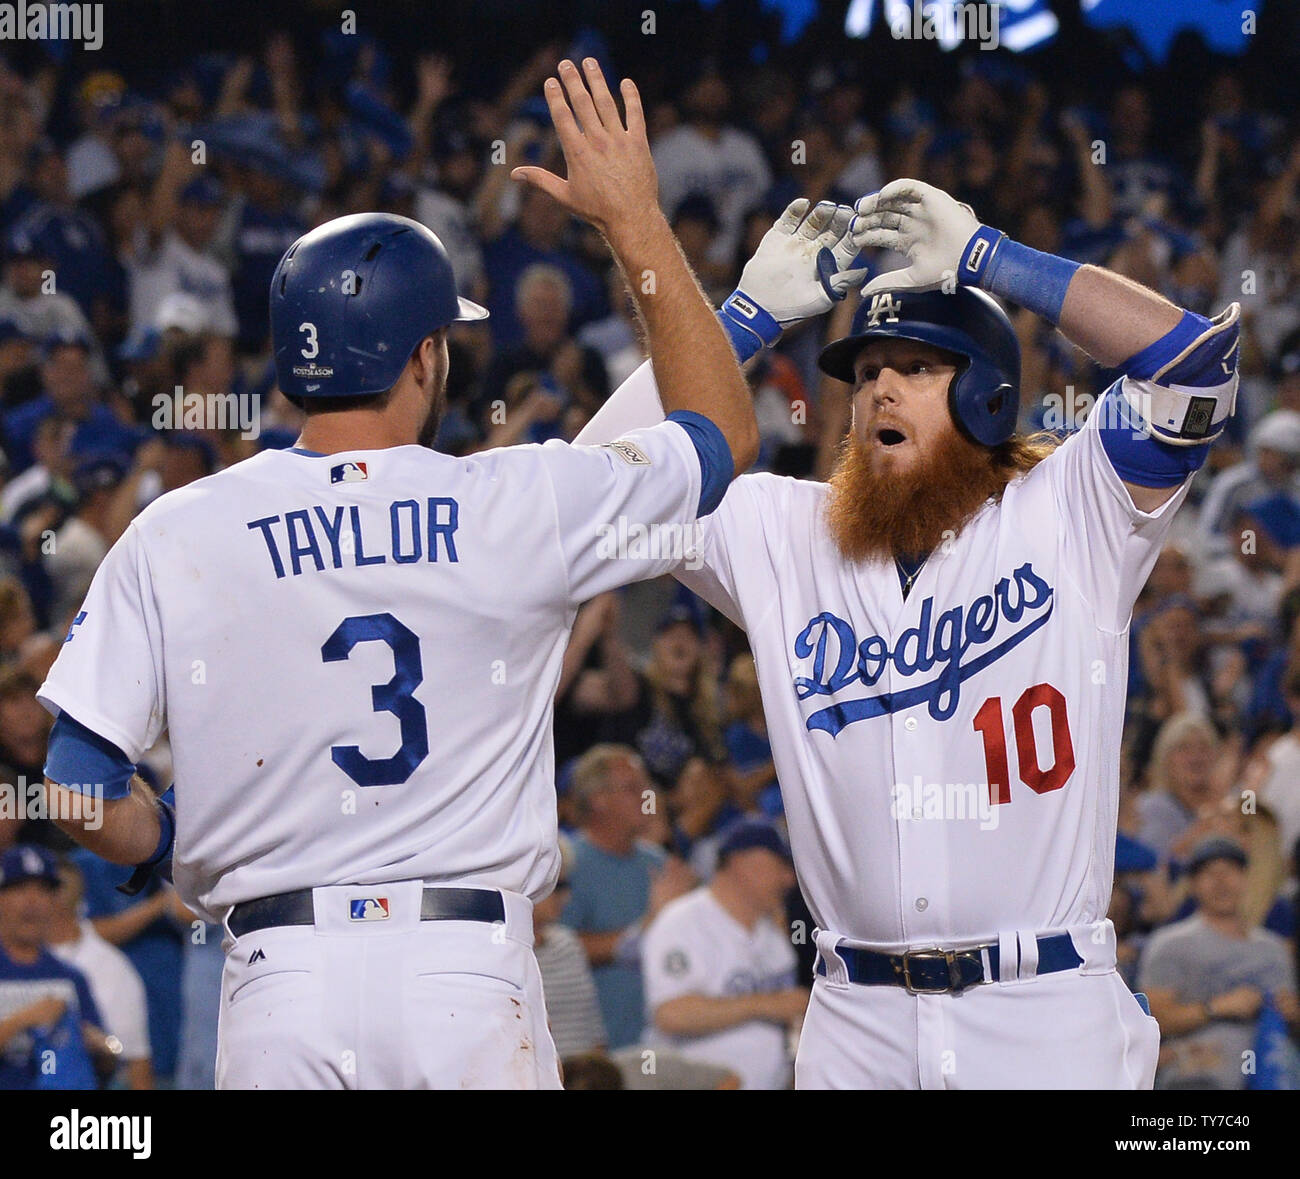 Corey Seager Stock Photos & Corey Seager Stock Images - Alamy